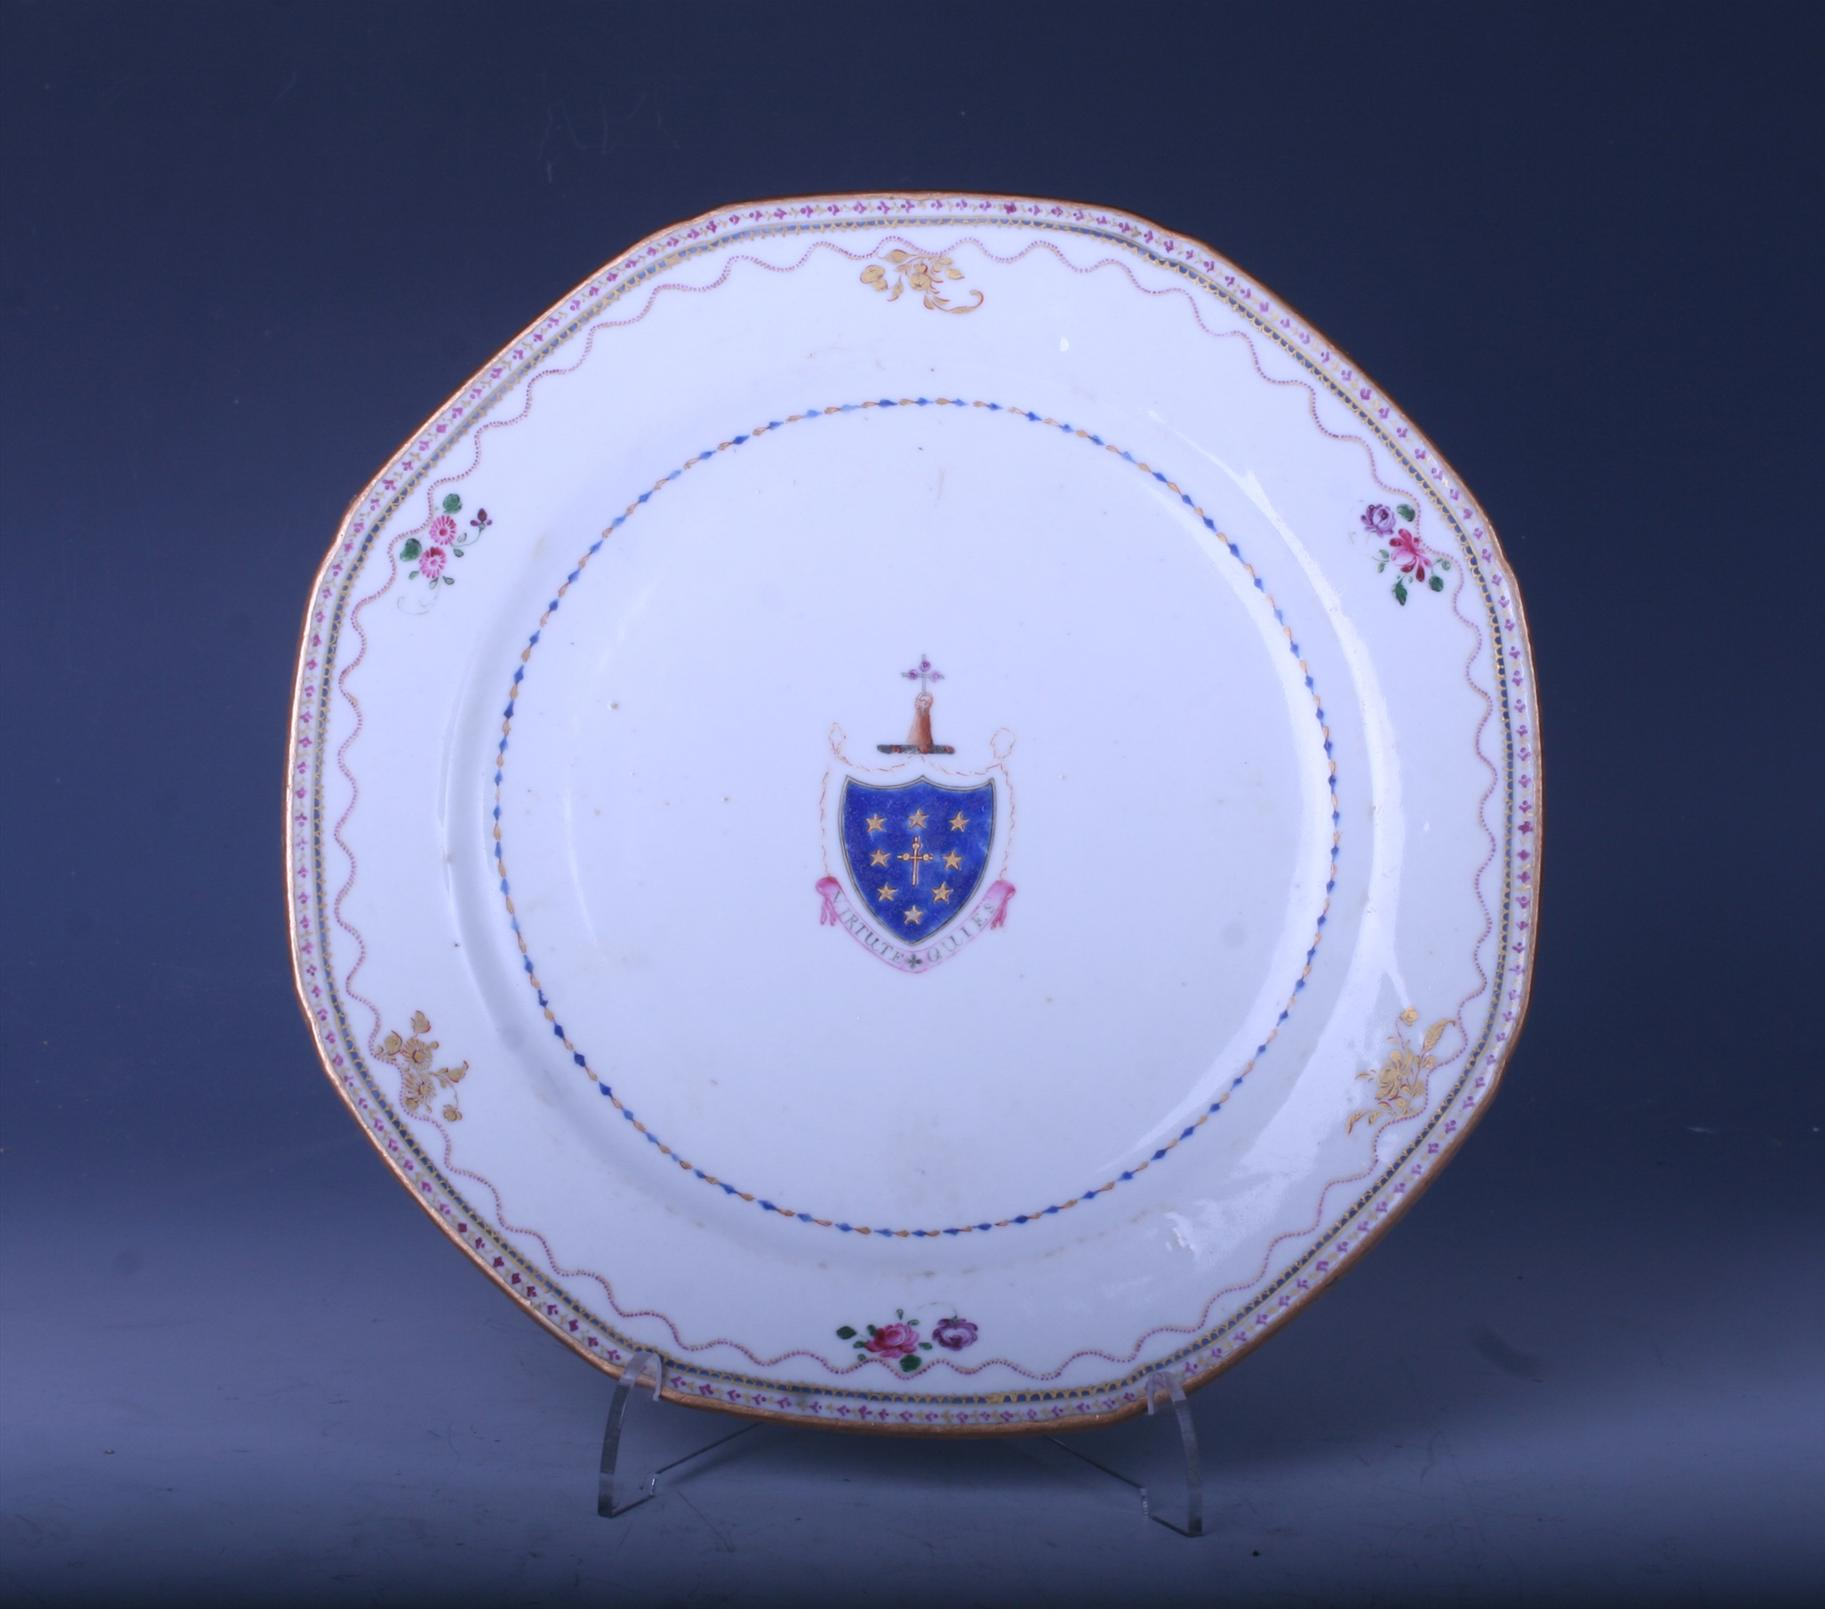 A Chinese Armorial Porcelain Plate Myfamilysilver Com